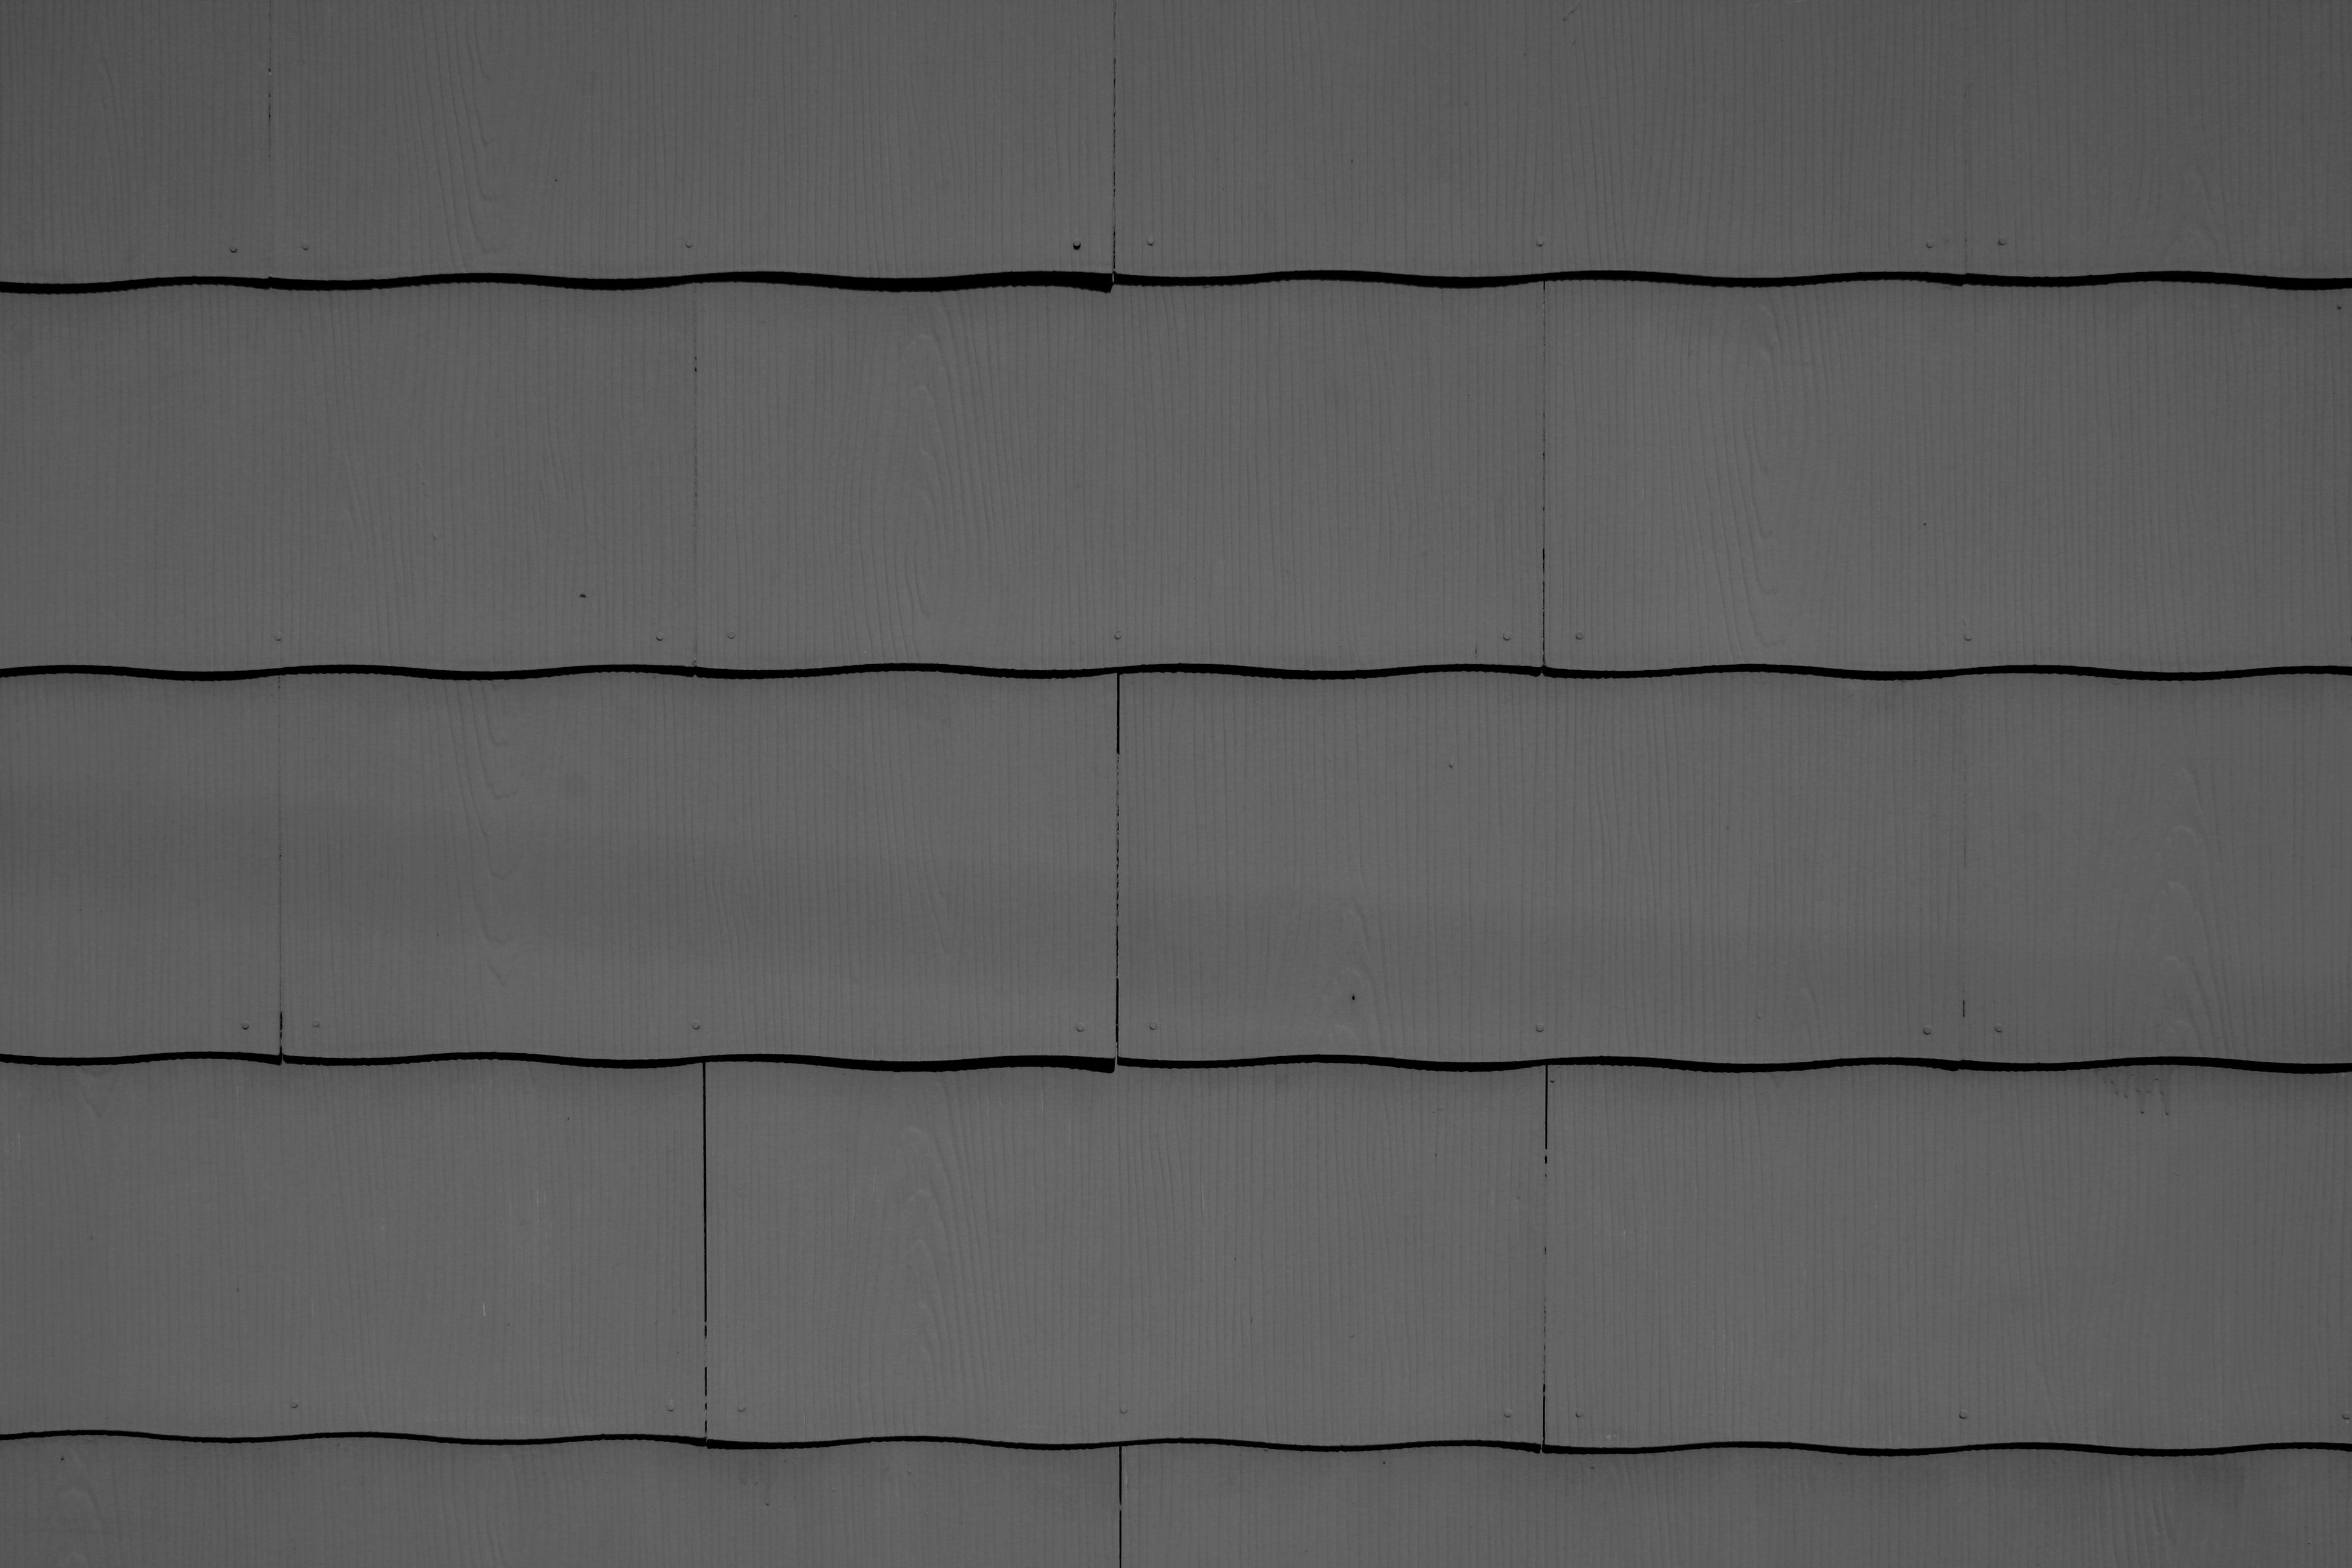 Charcoal Gray Scalloped Asbestos Siding Shingles Texture Free High Resolution Photo Cement Board